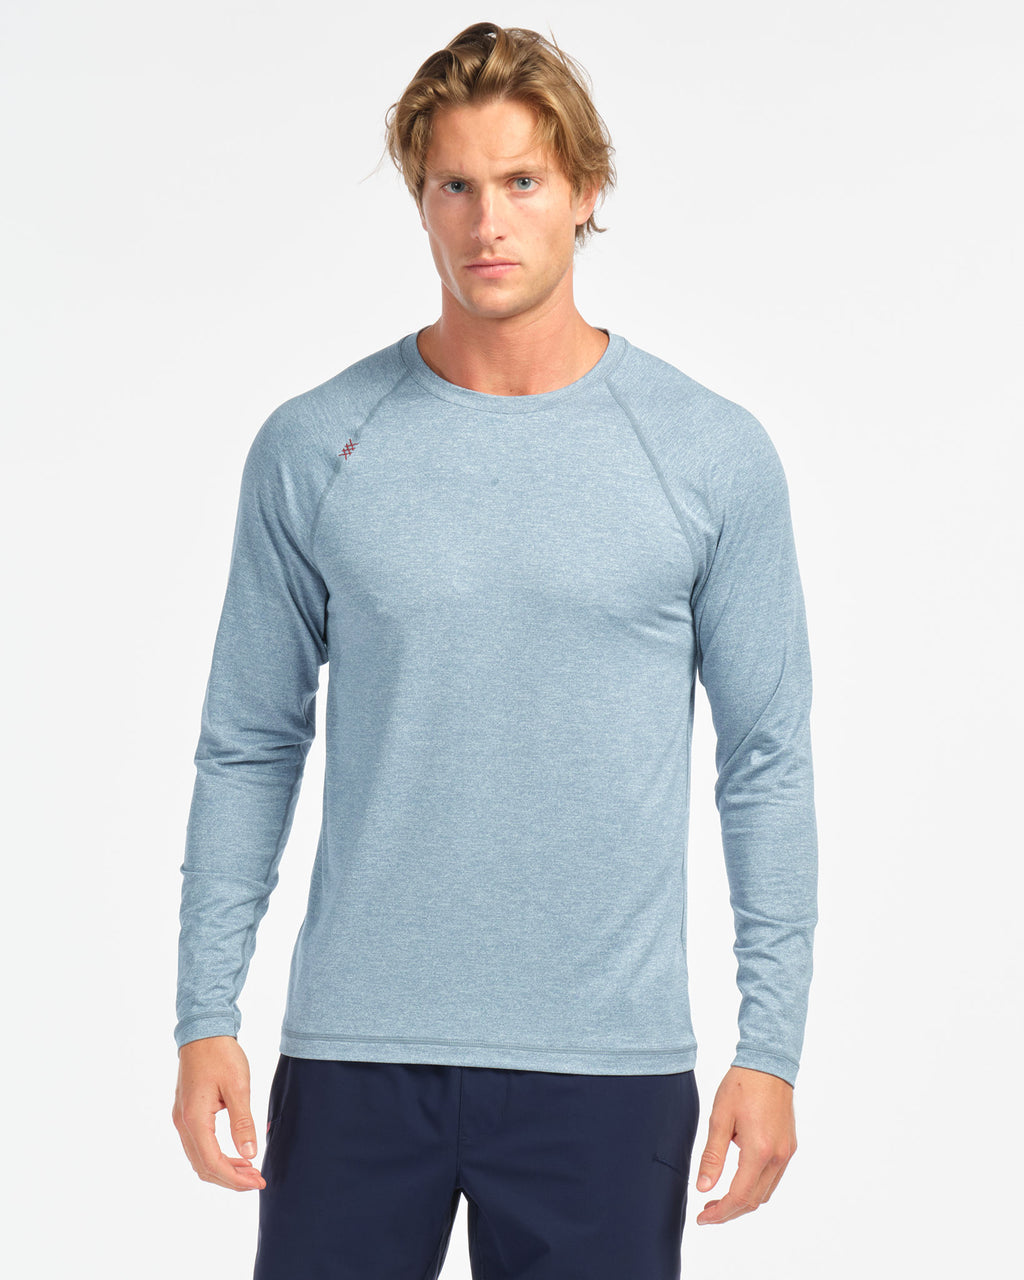 Reign Long Sleeve, Bluestone Heather